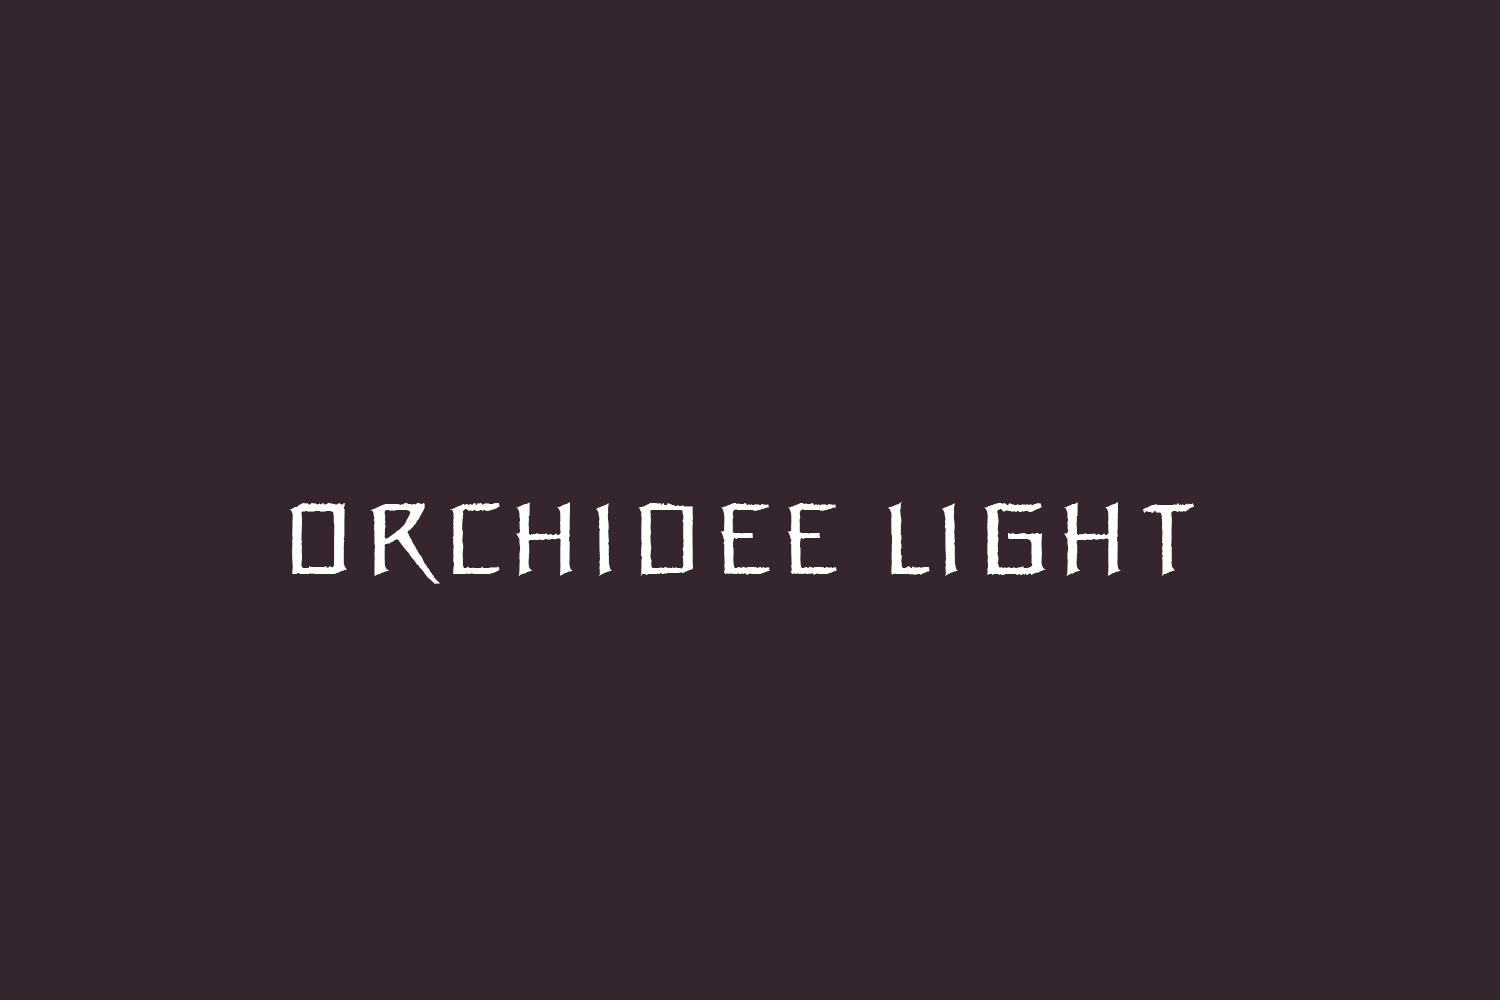 Orchidee Light